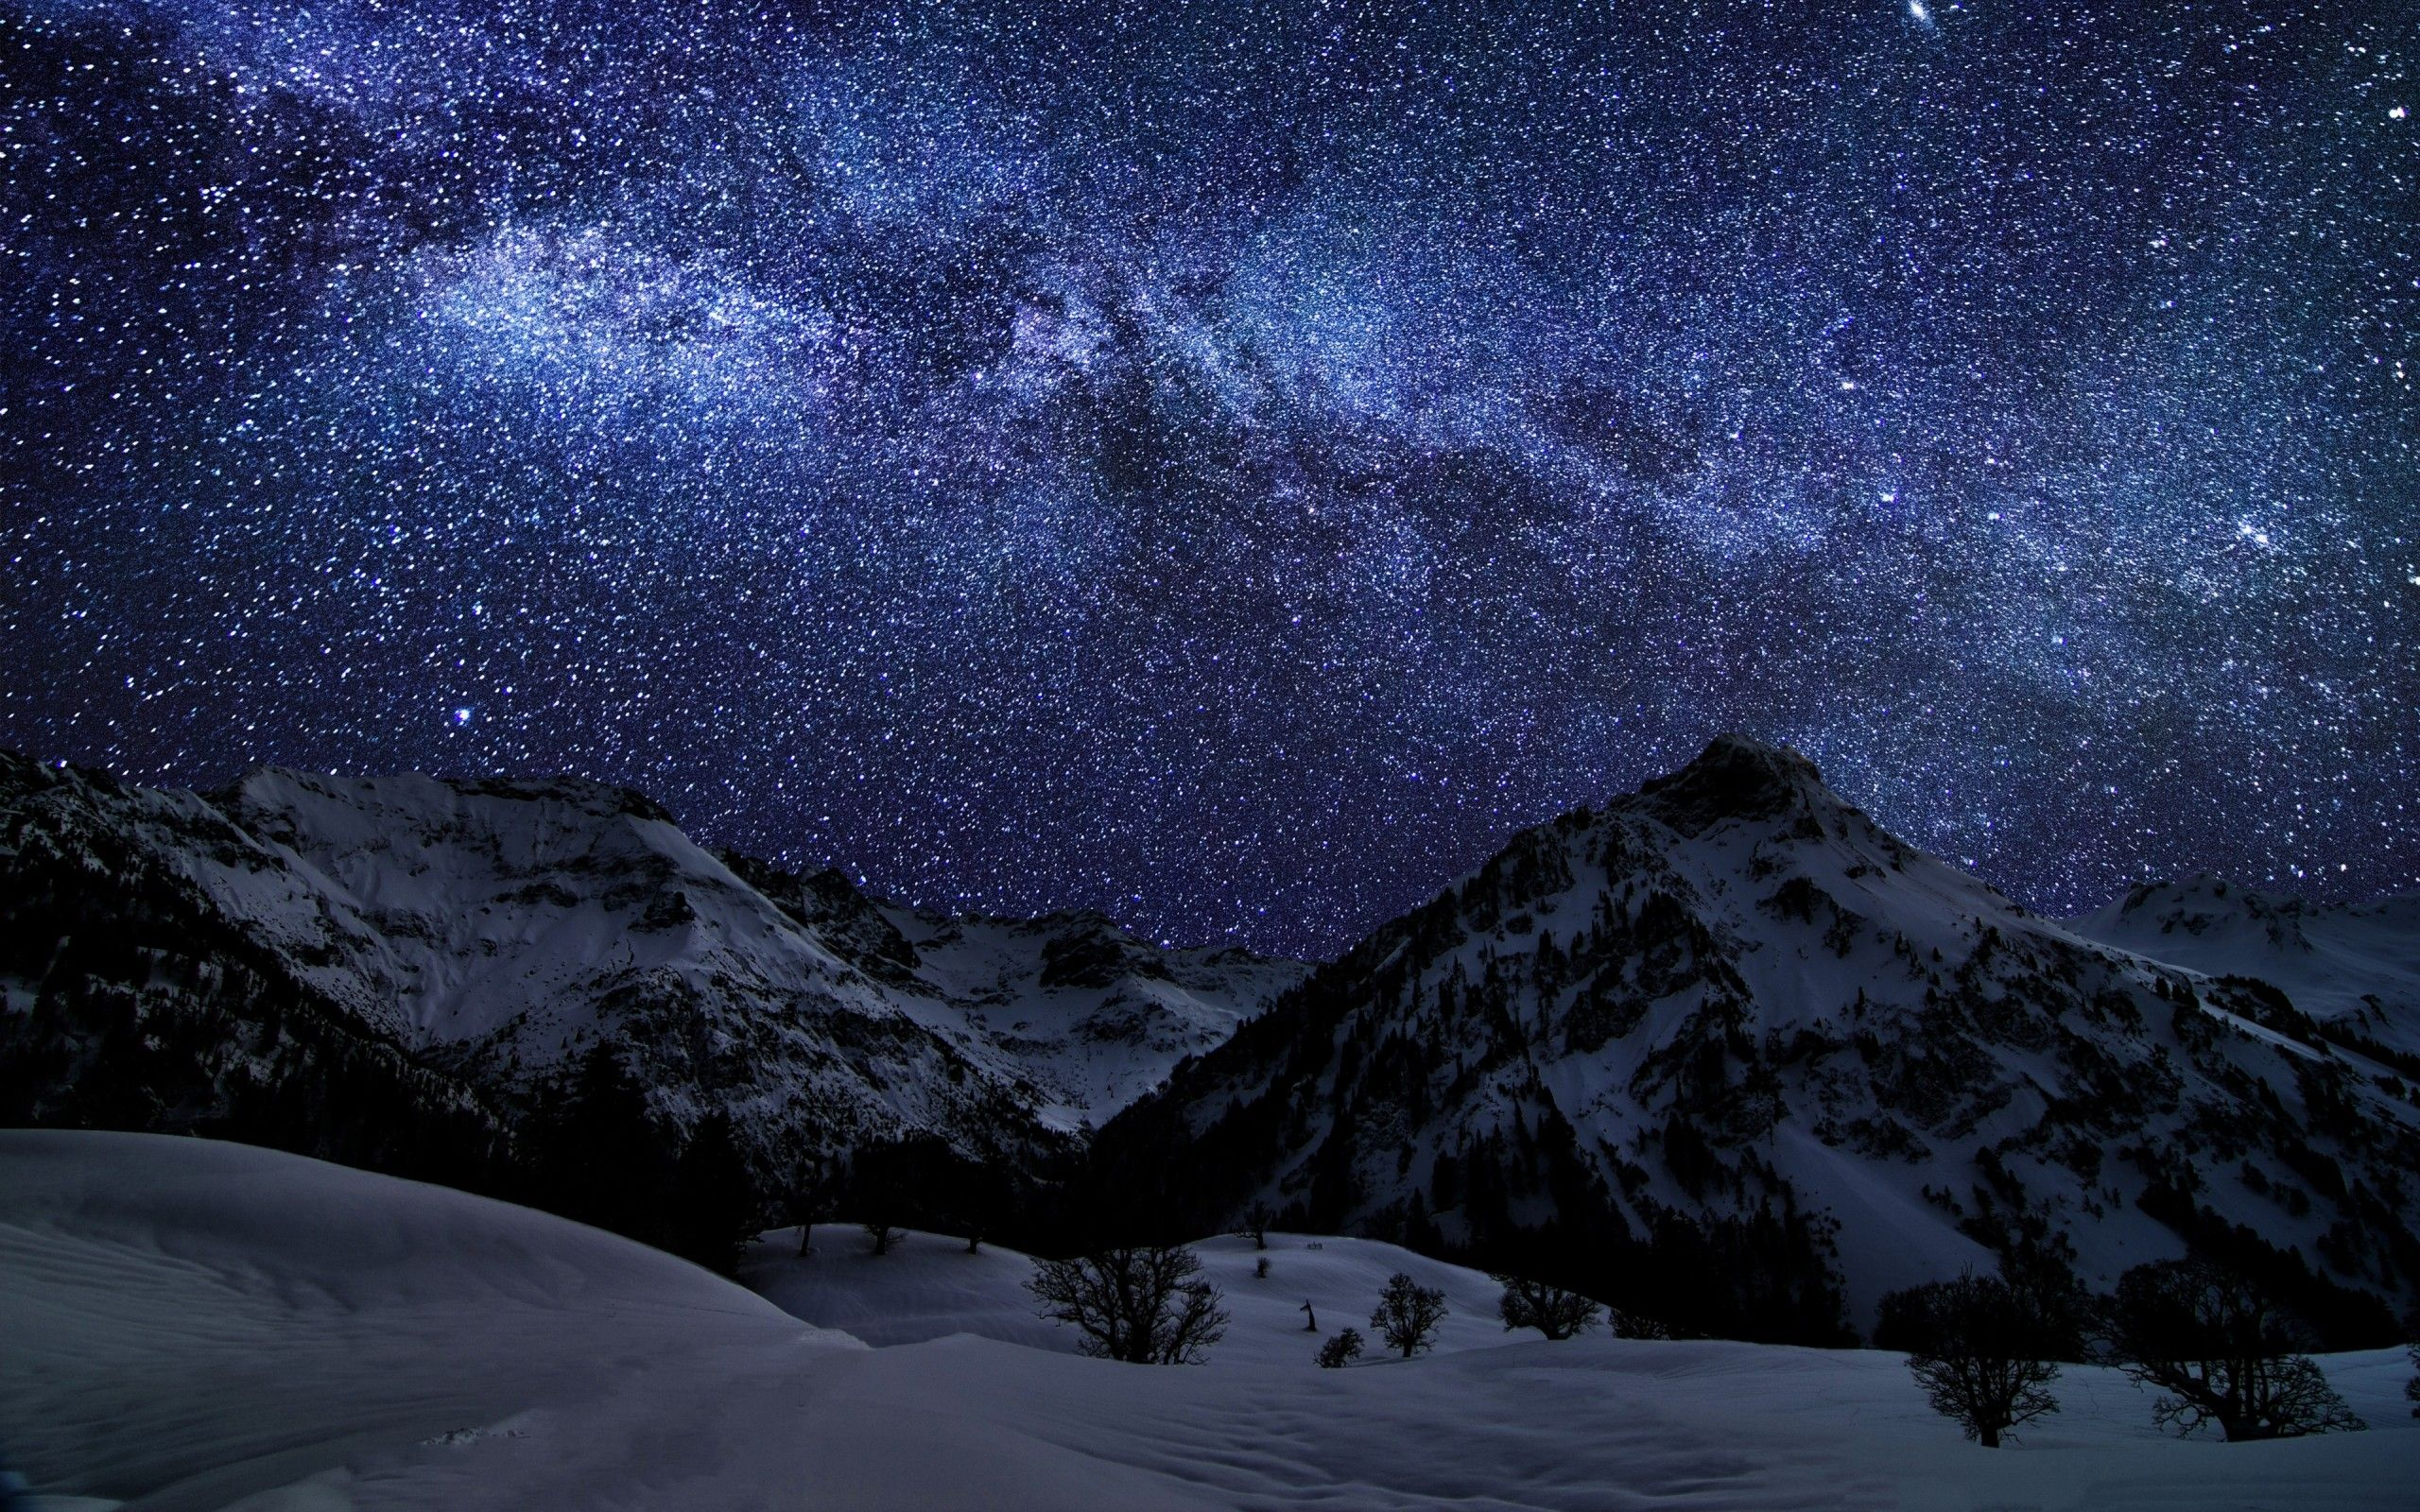 Mountains Landscapes Nature Winter Snow Night Stars Galaxies Germany Bavaria Long Exposure I Totally Love This Winter Landscape Night Skies Beautiful Nature